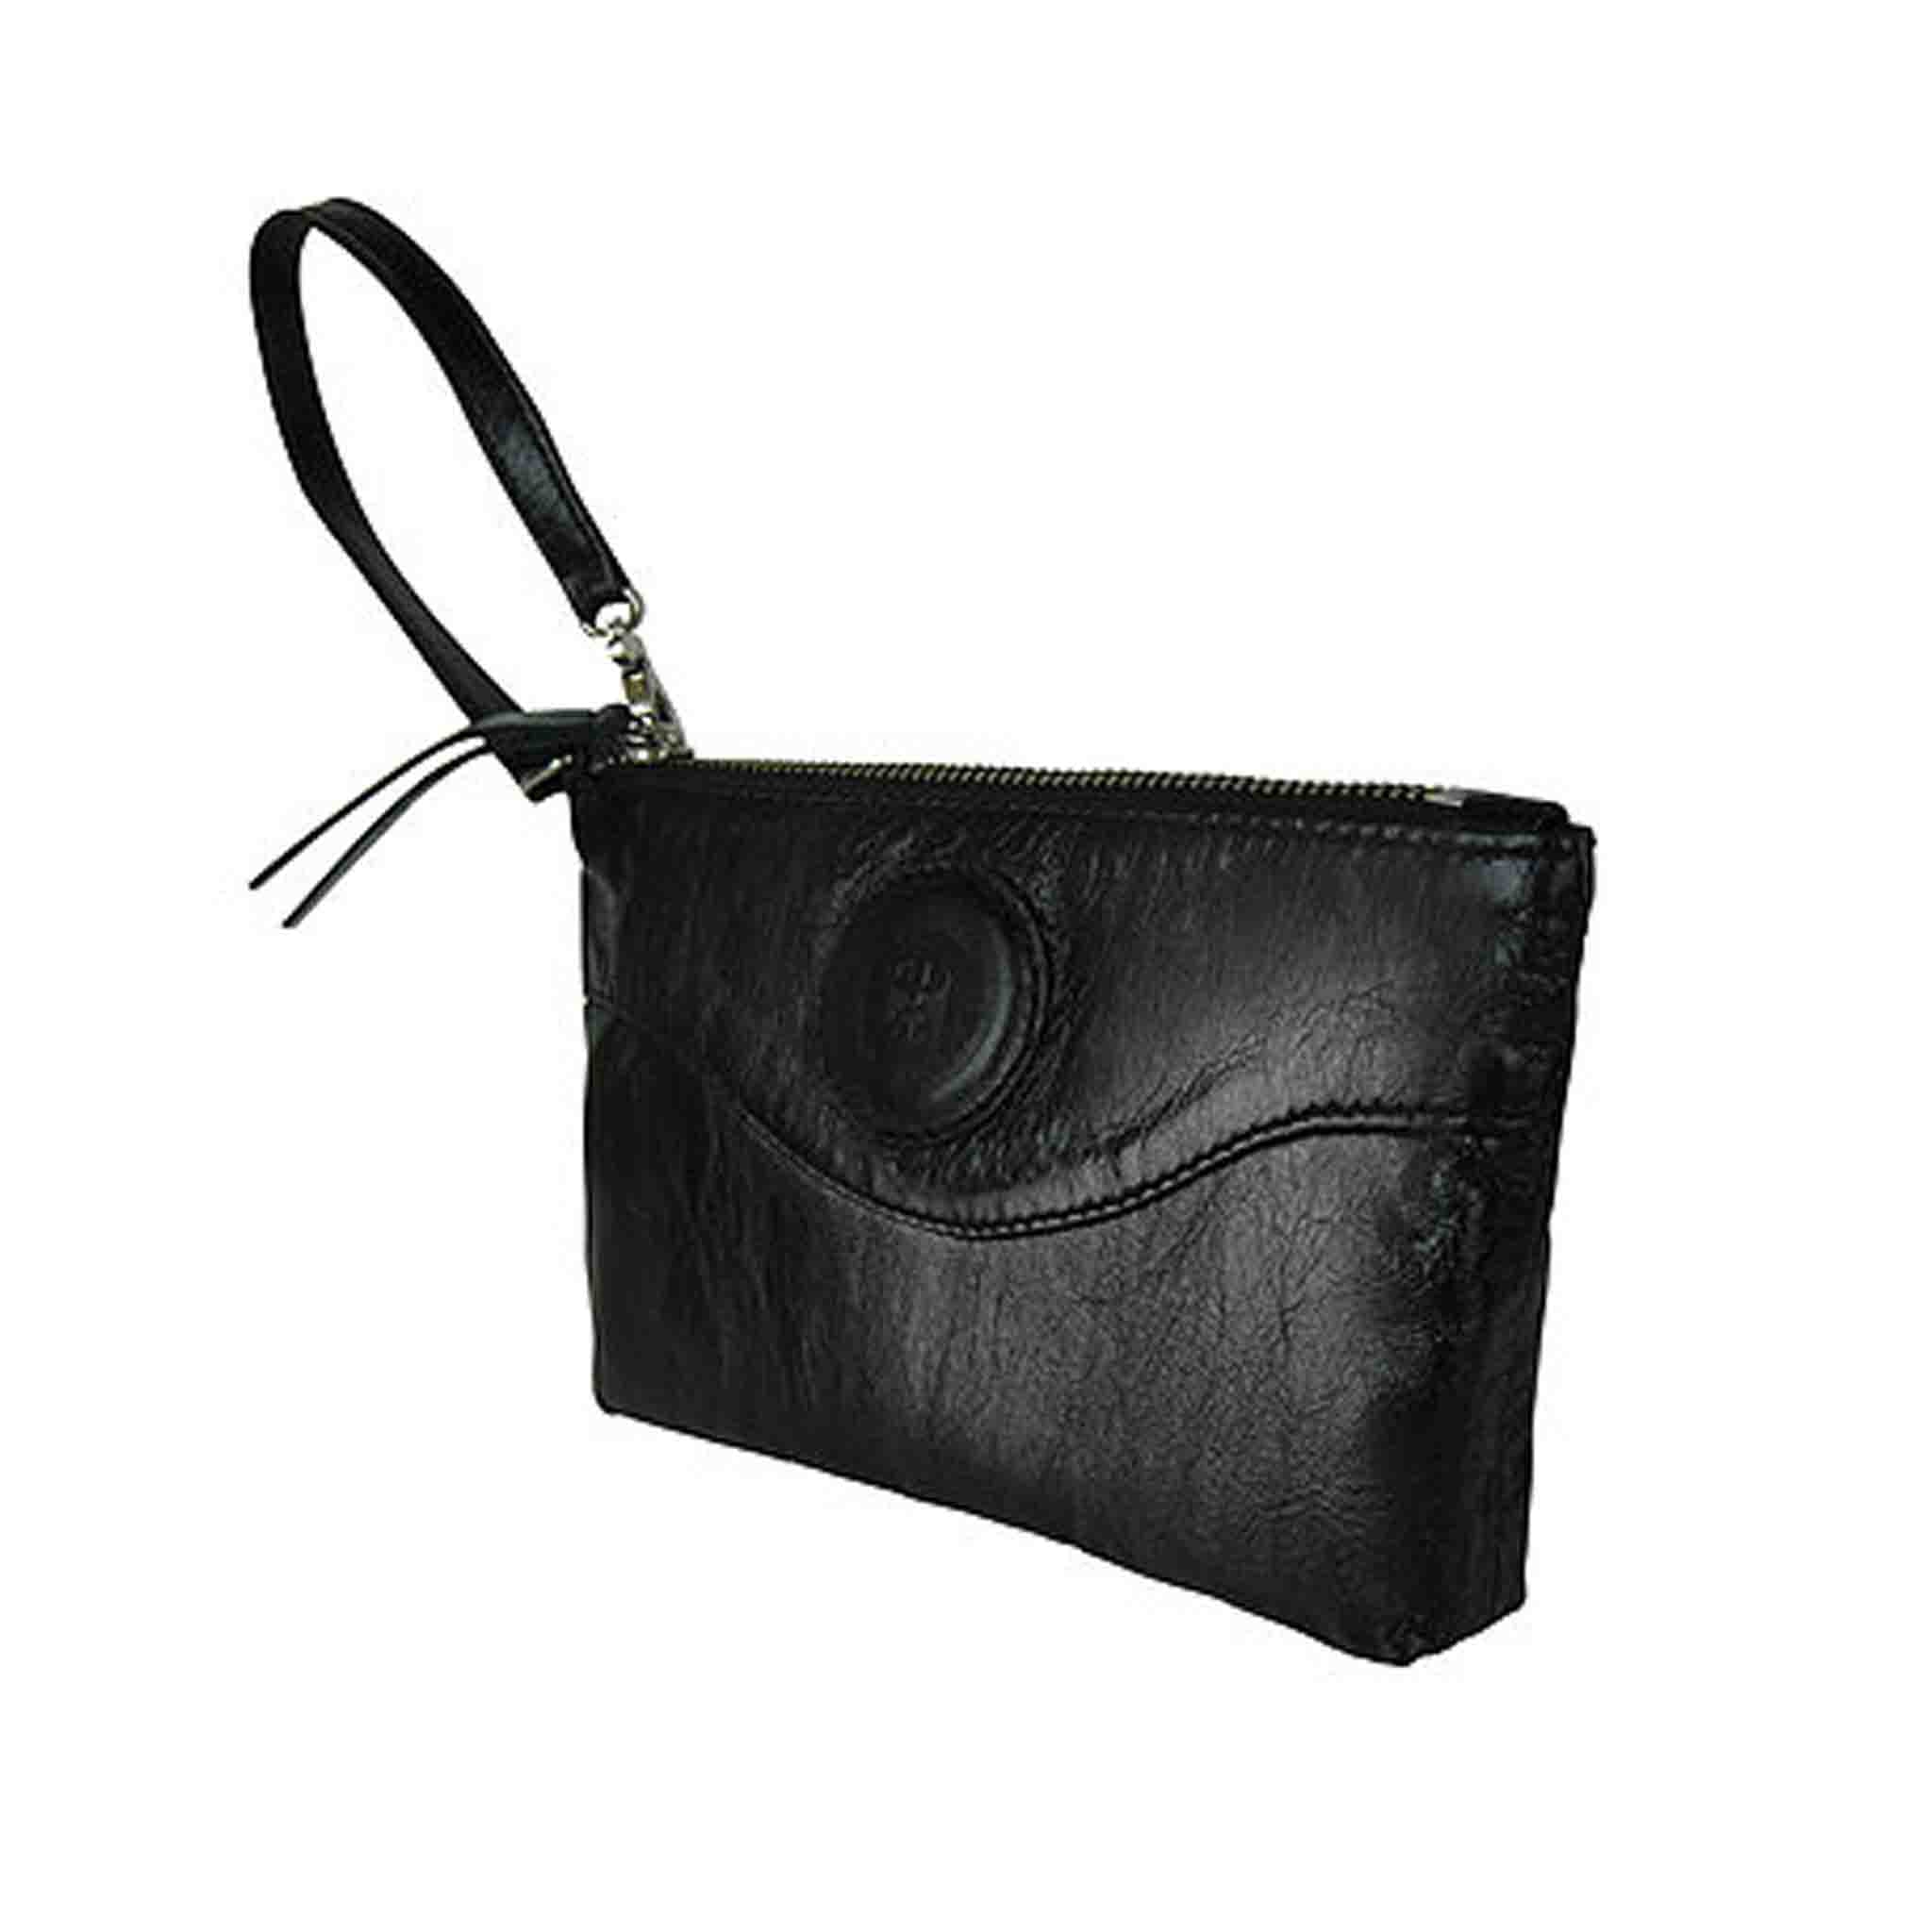 BLACK LEATHER WRISTLET WOMEN'S EINFACH